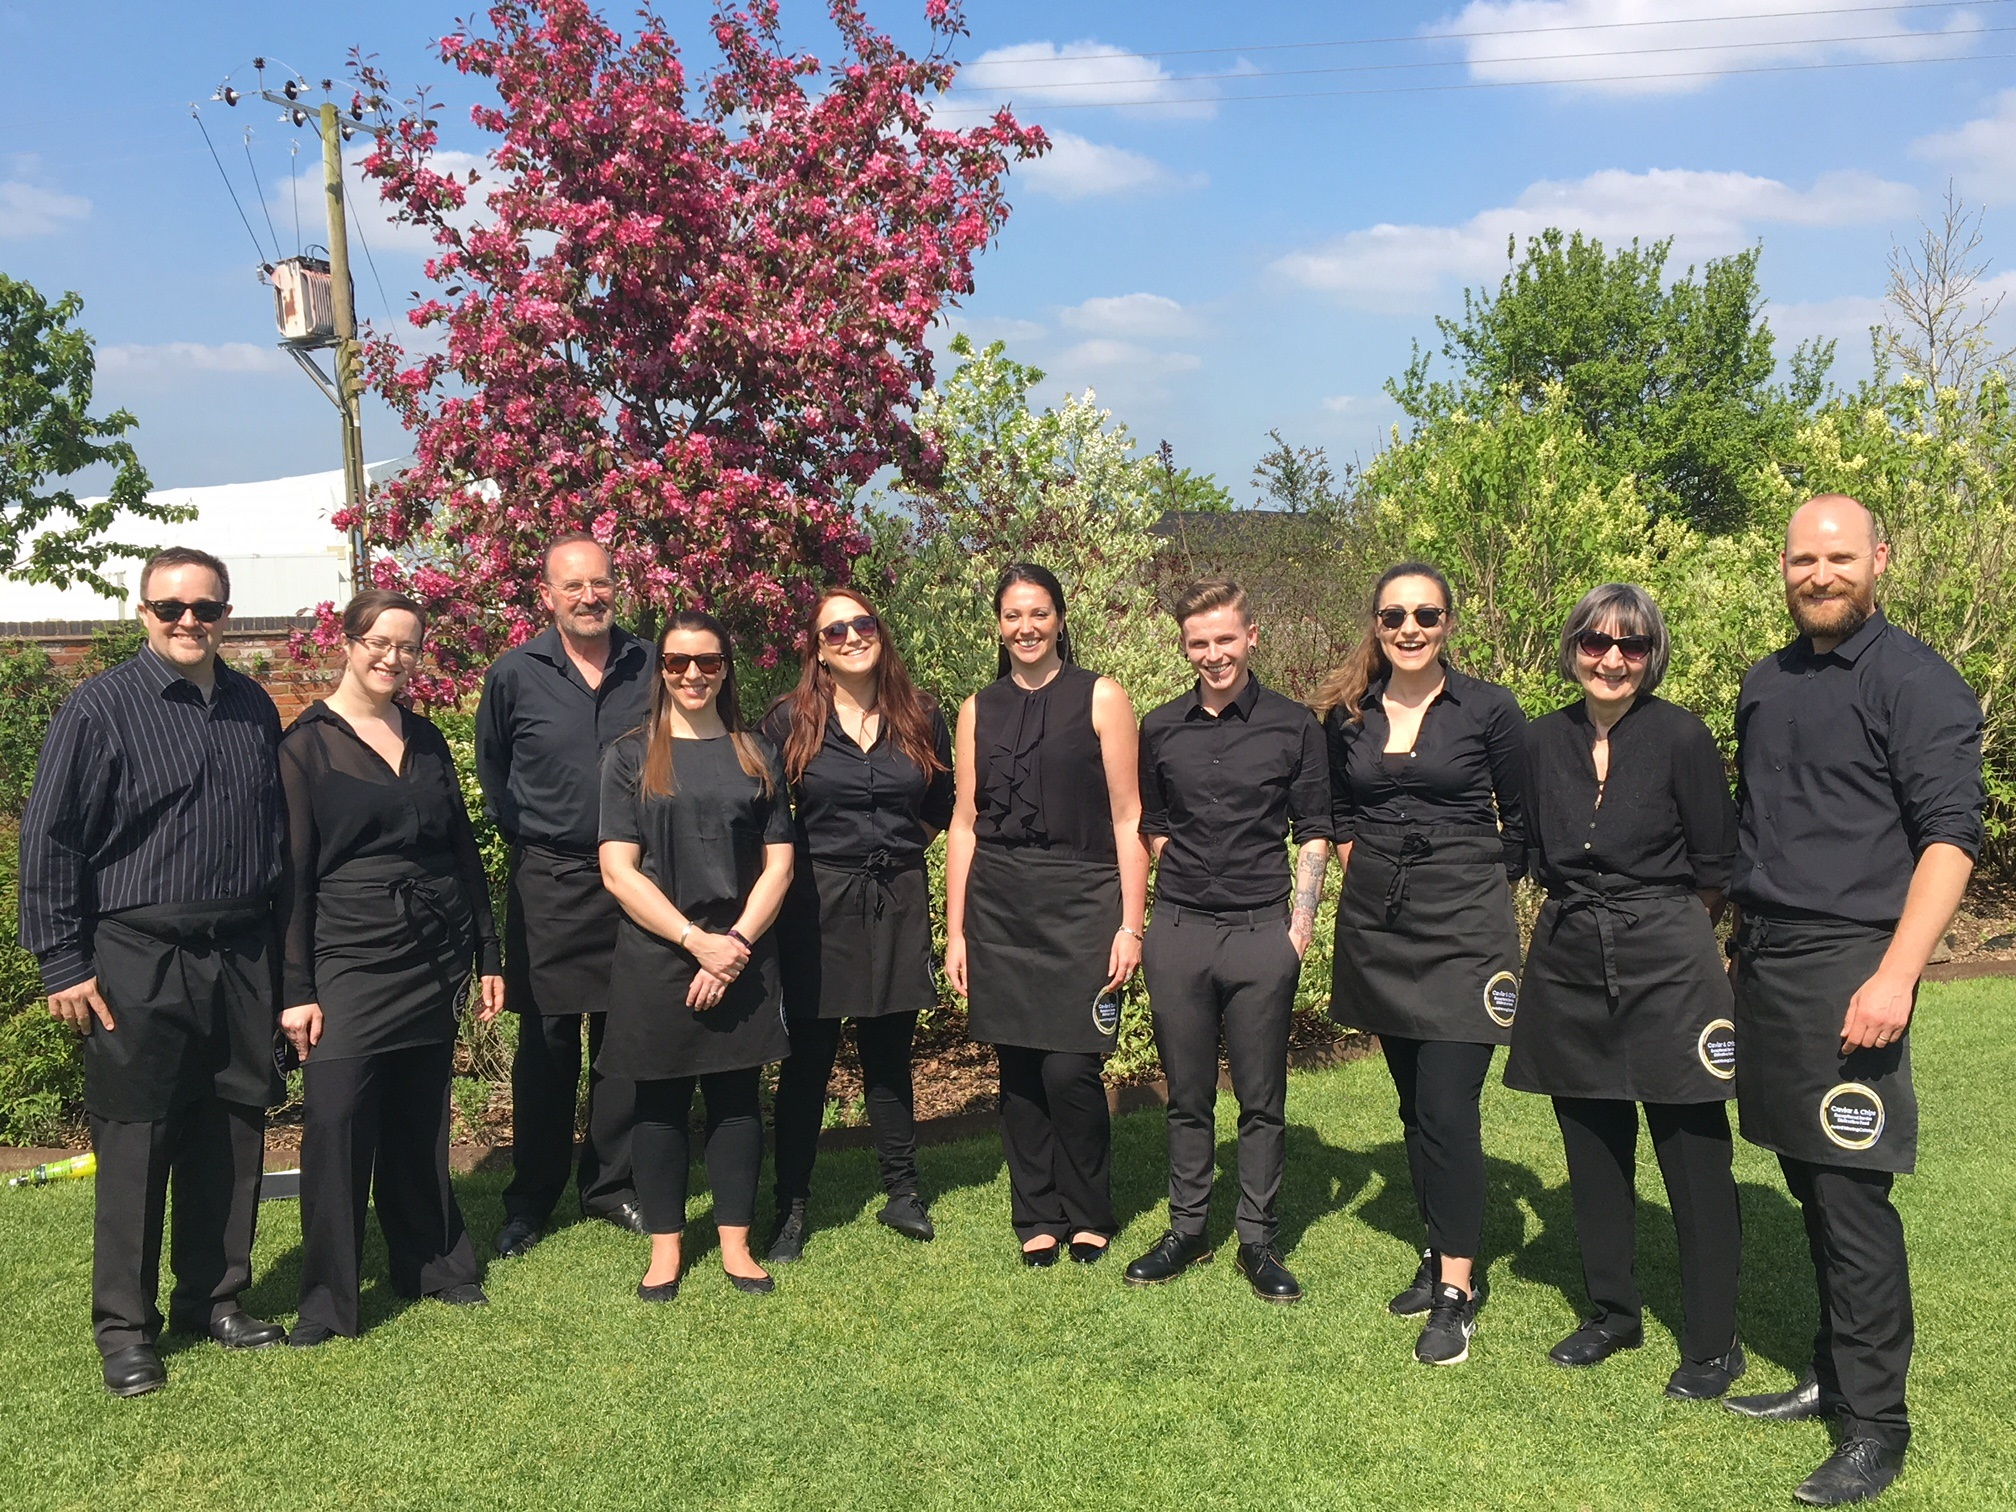 Caviar & Chips Catering service team wed